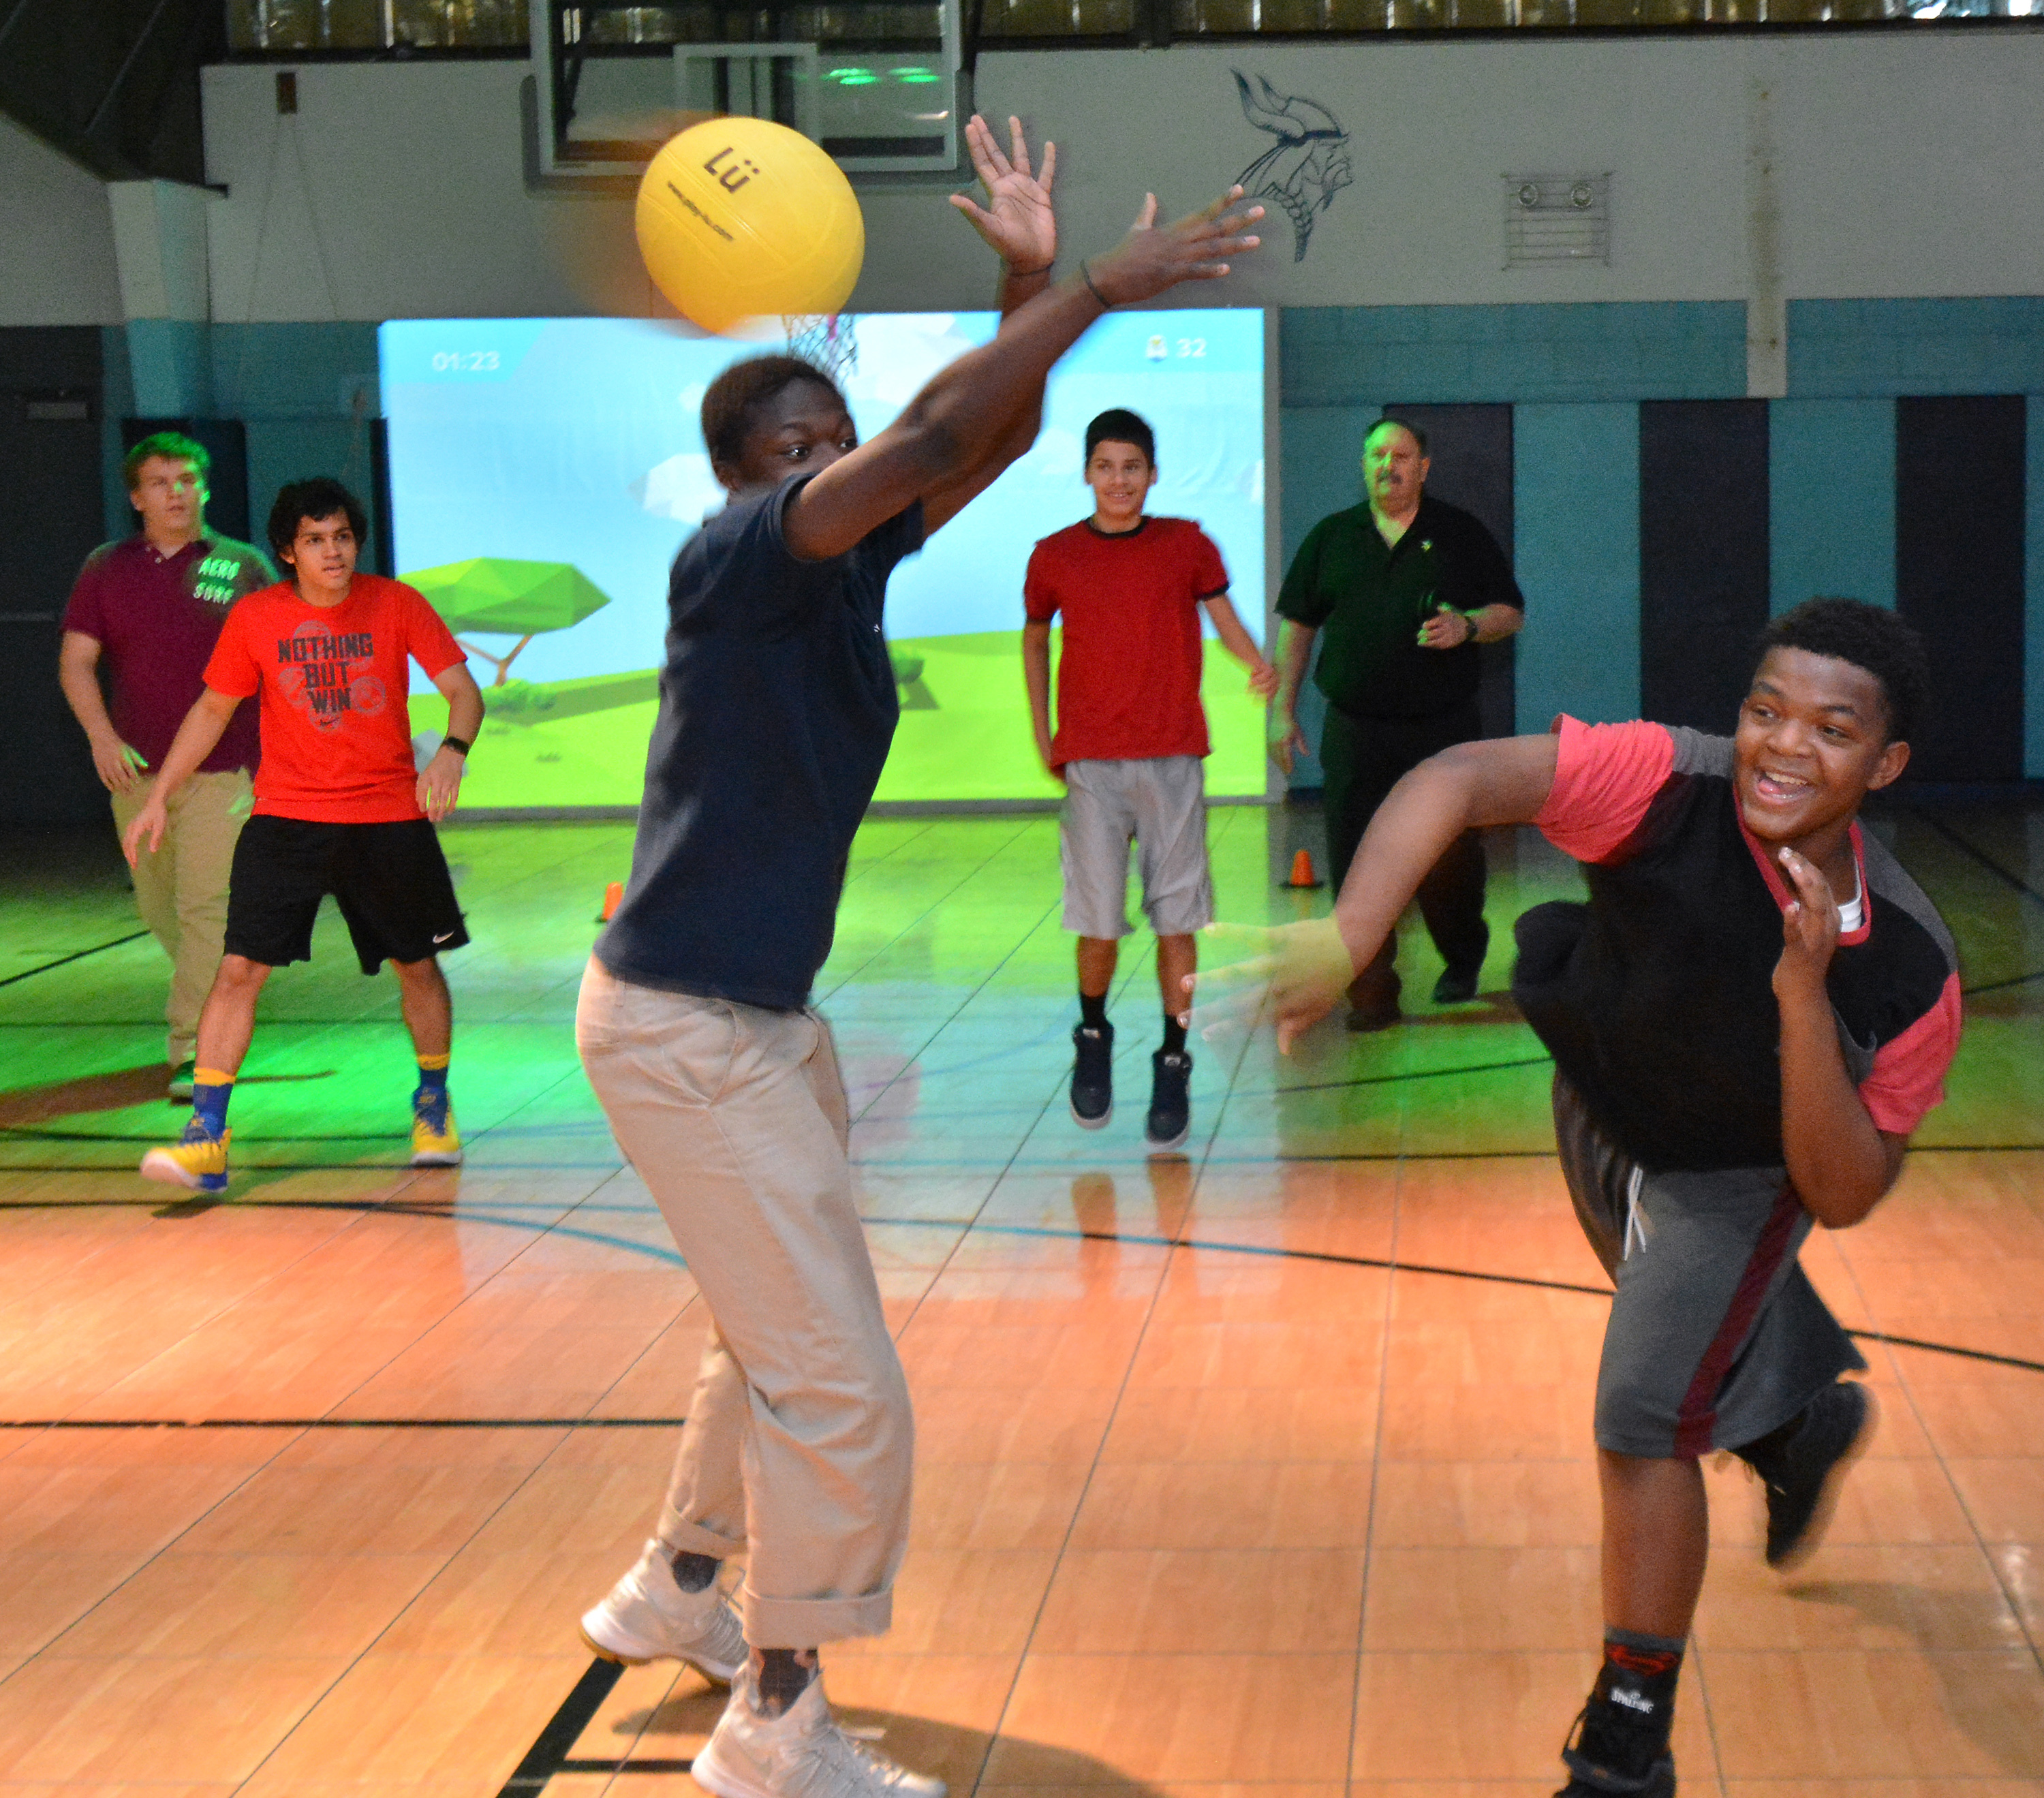 Valley Day School ninth grader Darnell Braxton,R, and fellow students take part in activities in the Lu Interactive Playground instructed by Physical Education teacher James Romano,back R, at the school in Morrisville Pa. on Friday January 19,2018. Mark C Psoras/For the Inquirer